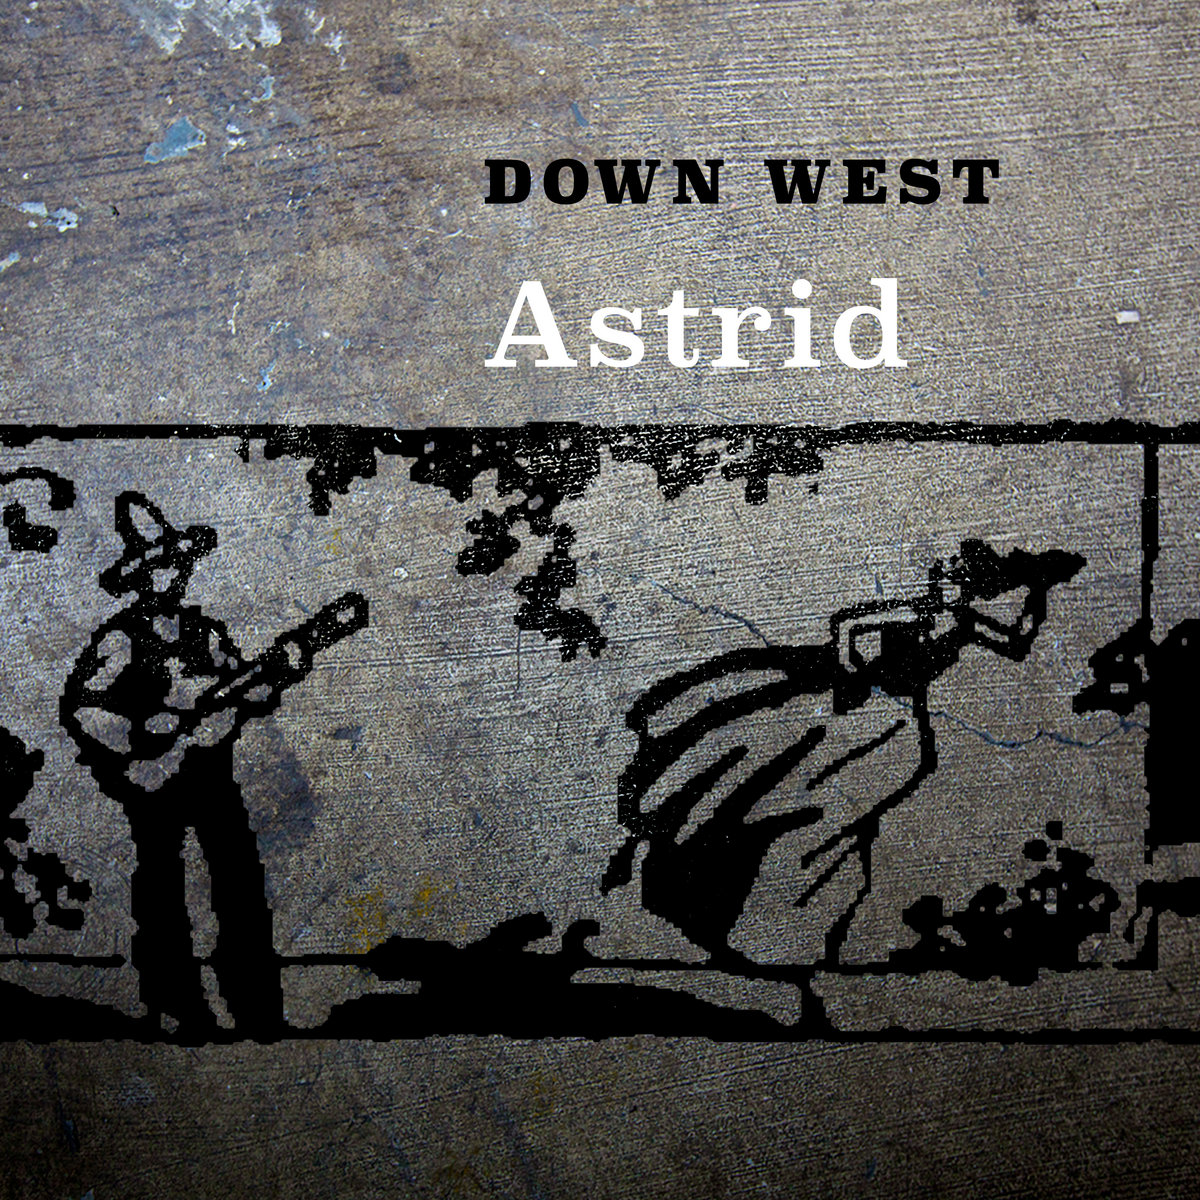 Astrid by Down West